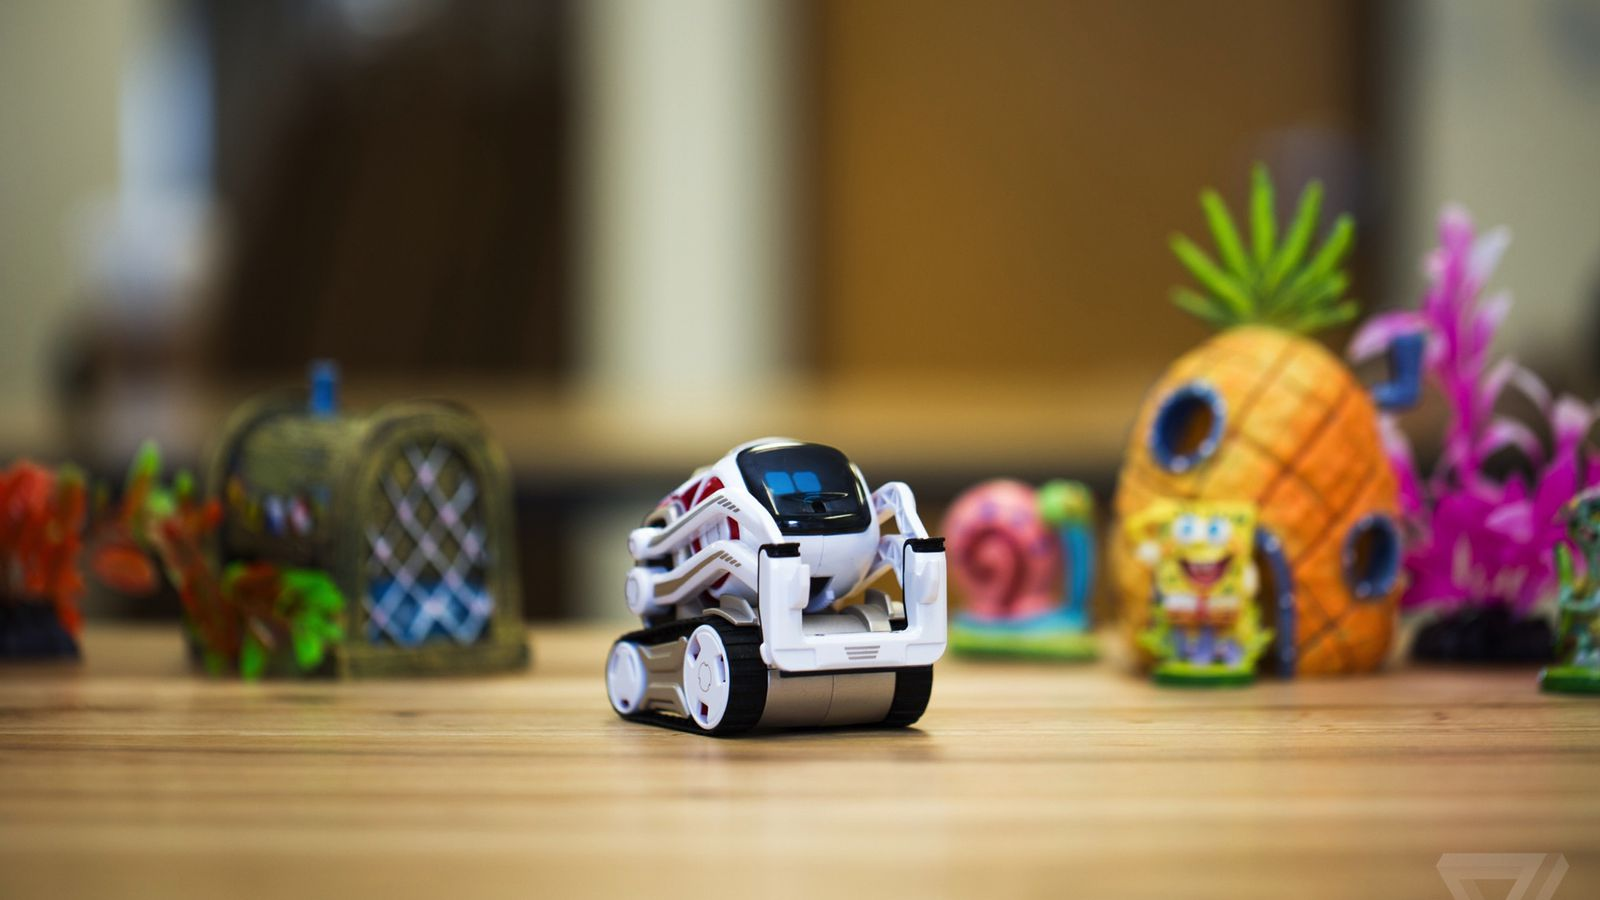 Robot Toys For Kids >> Anki's Cozmo robot is the new, adorable face of artificial intelligence - The Verge